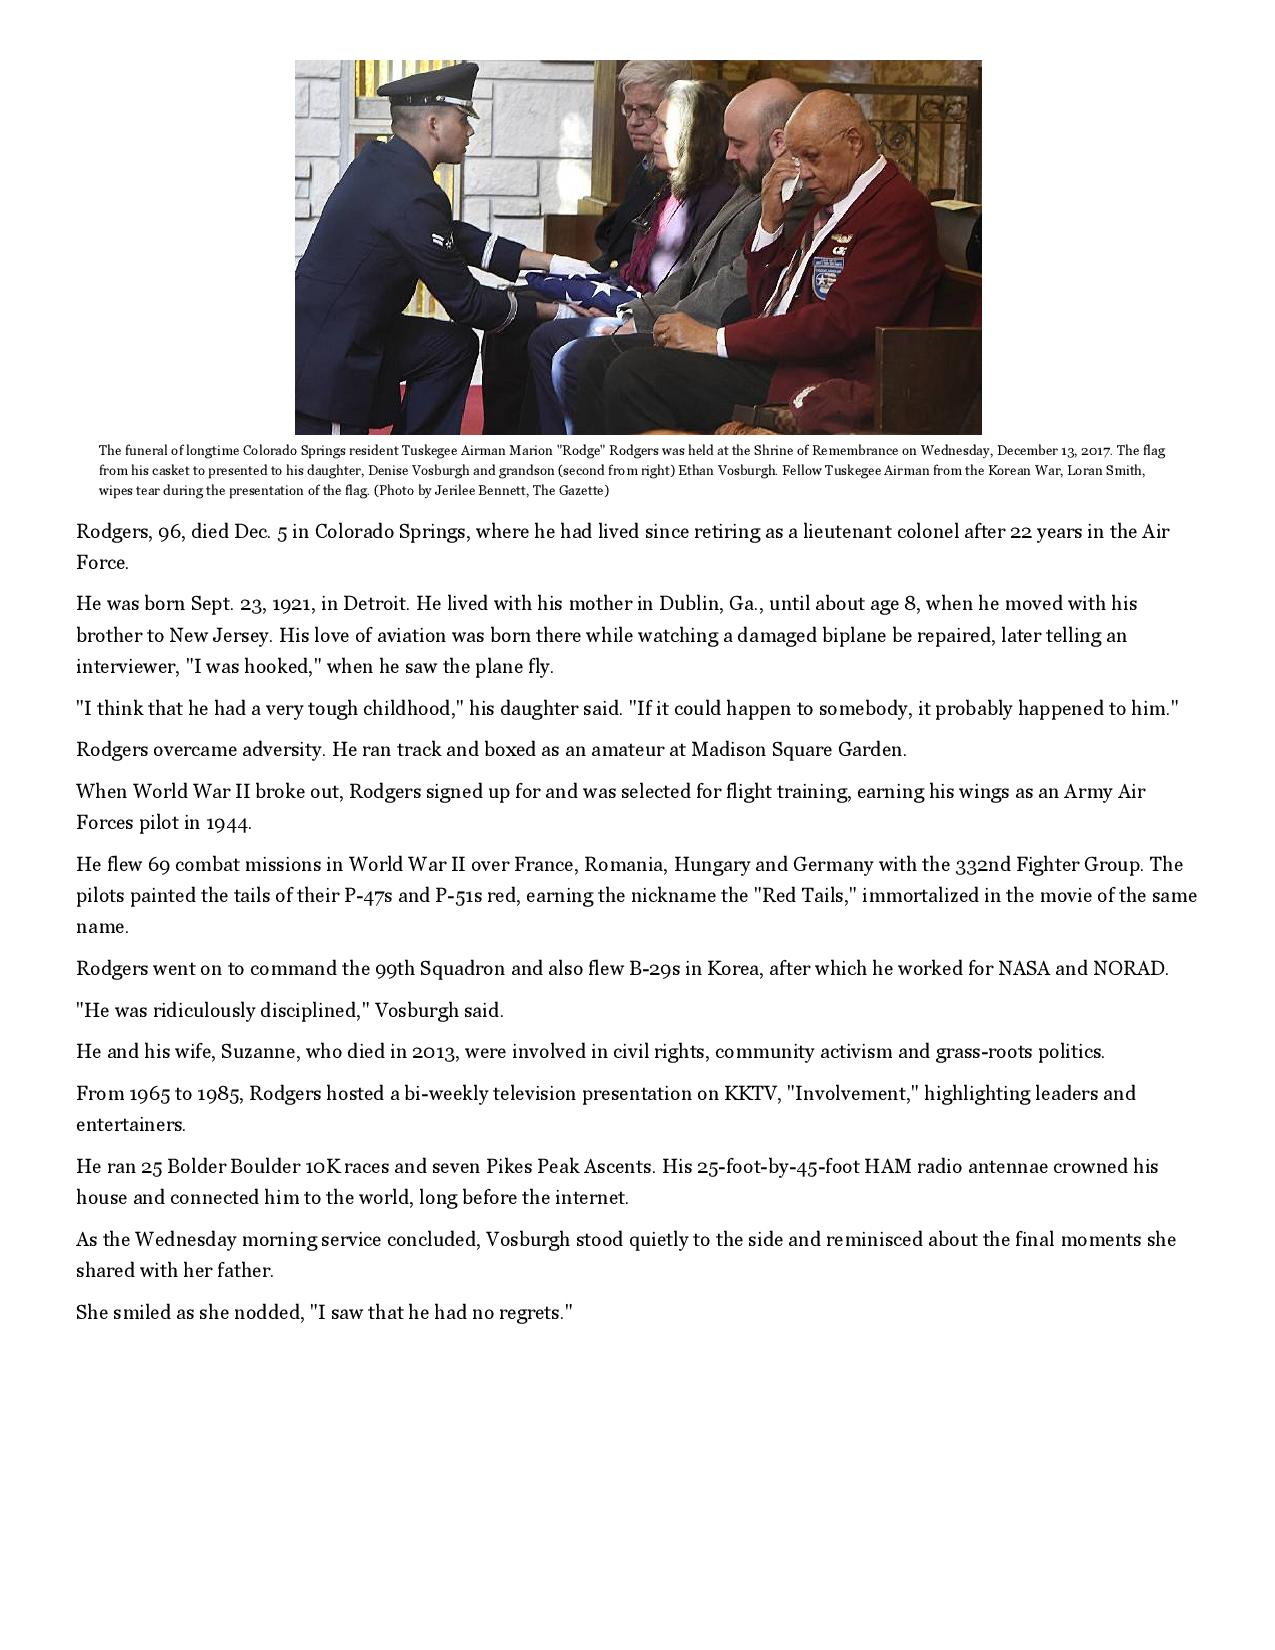 P-51_flyover_a_final_farewell_for_a_Tuskegee_Airman___Colorado_Springs_Gazette_News-page-002